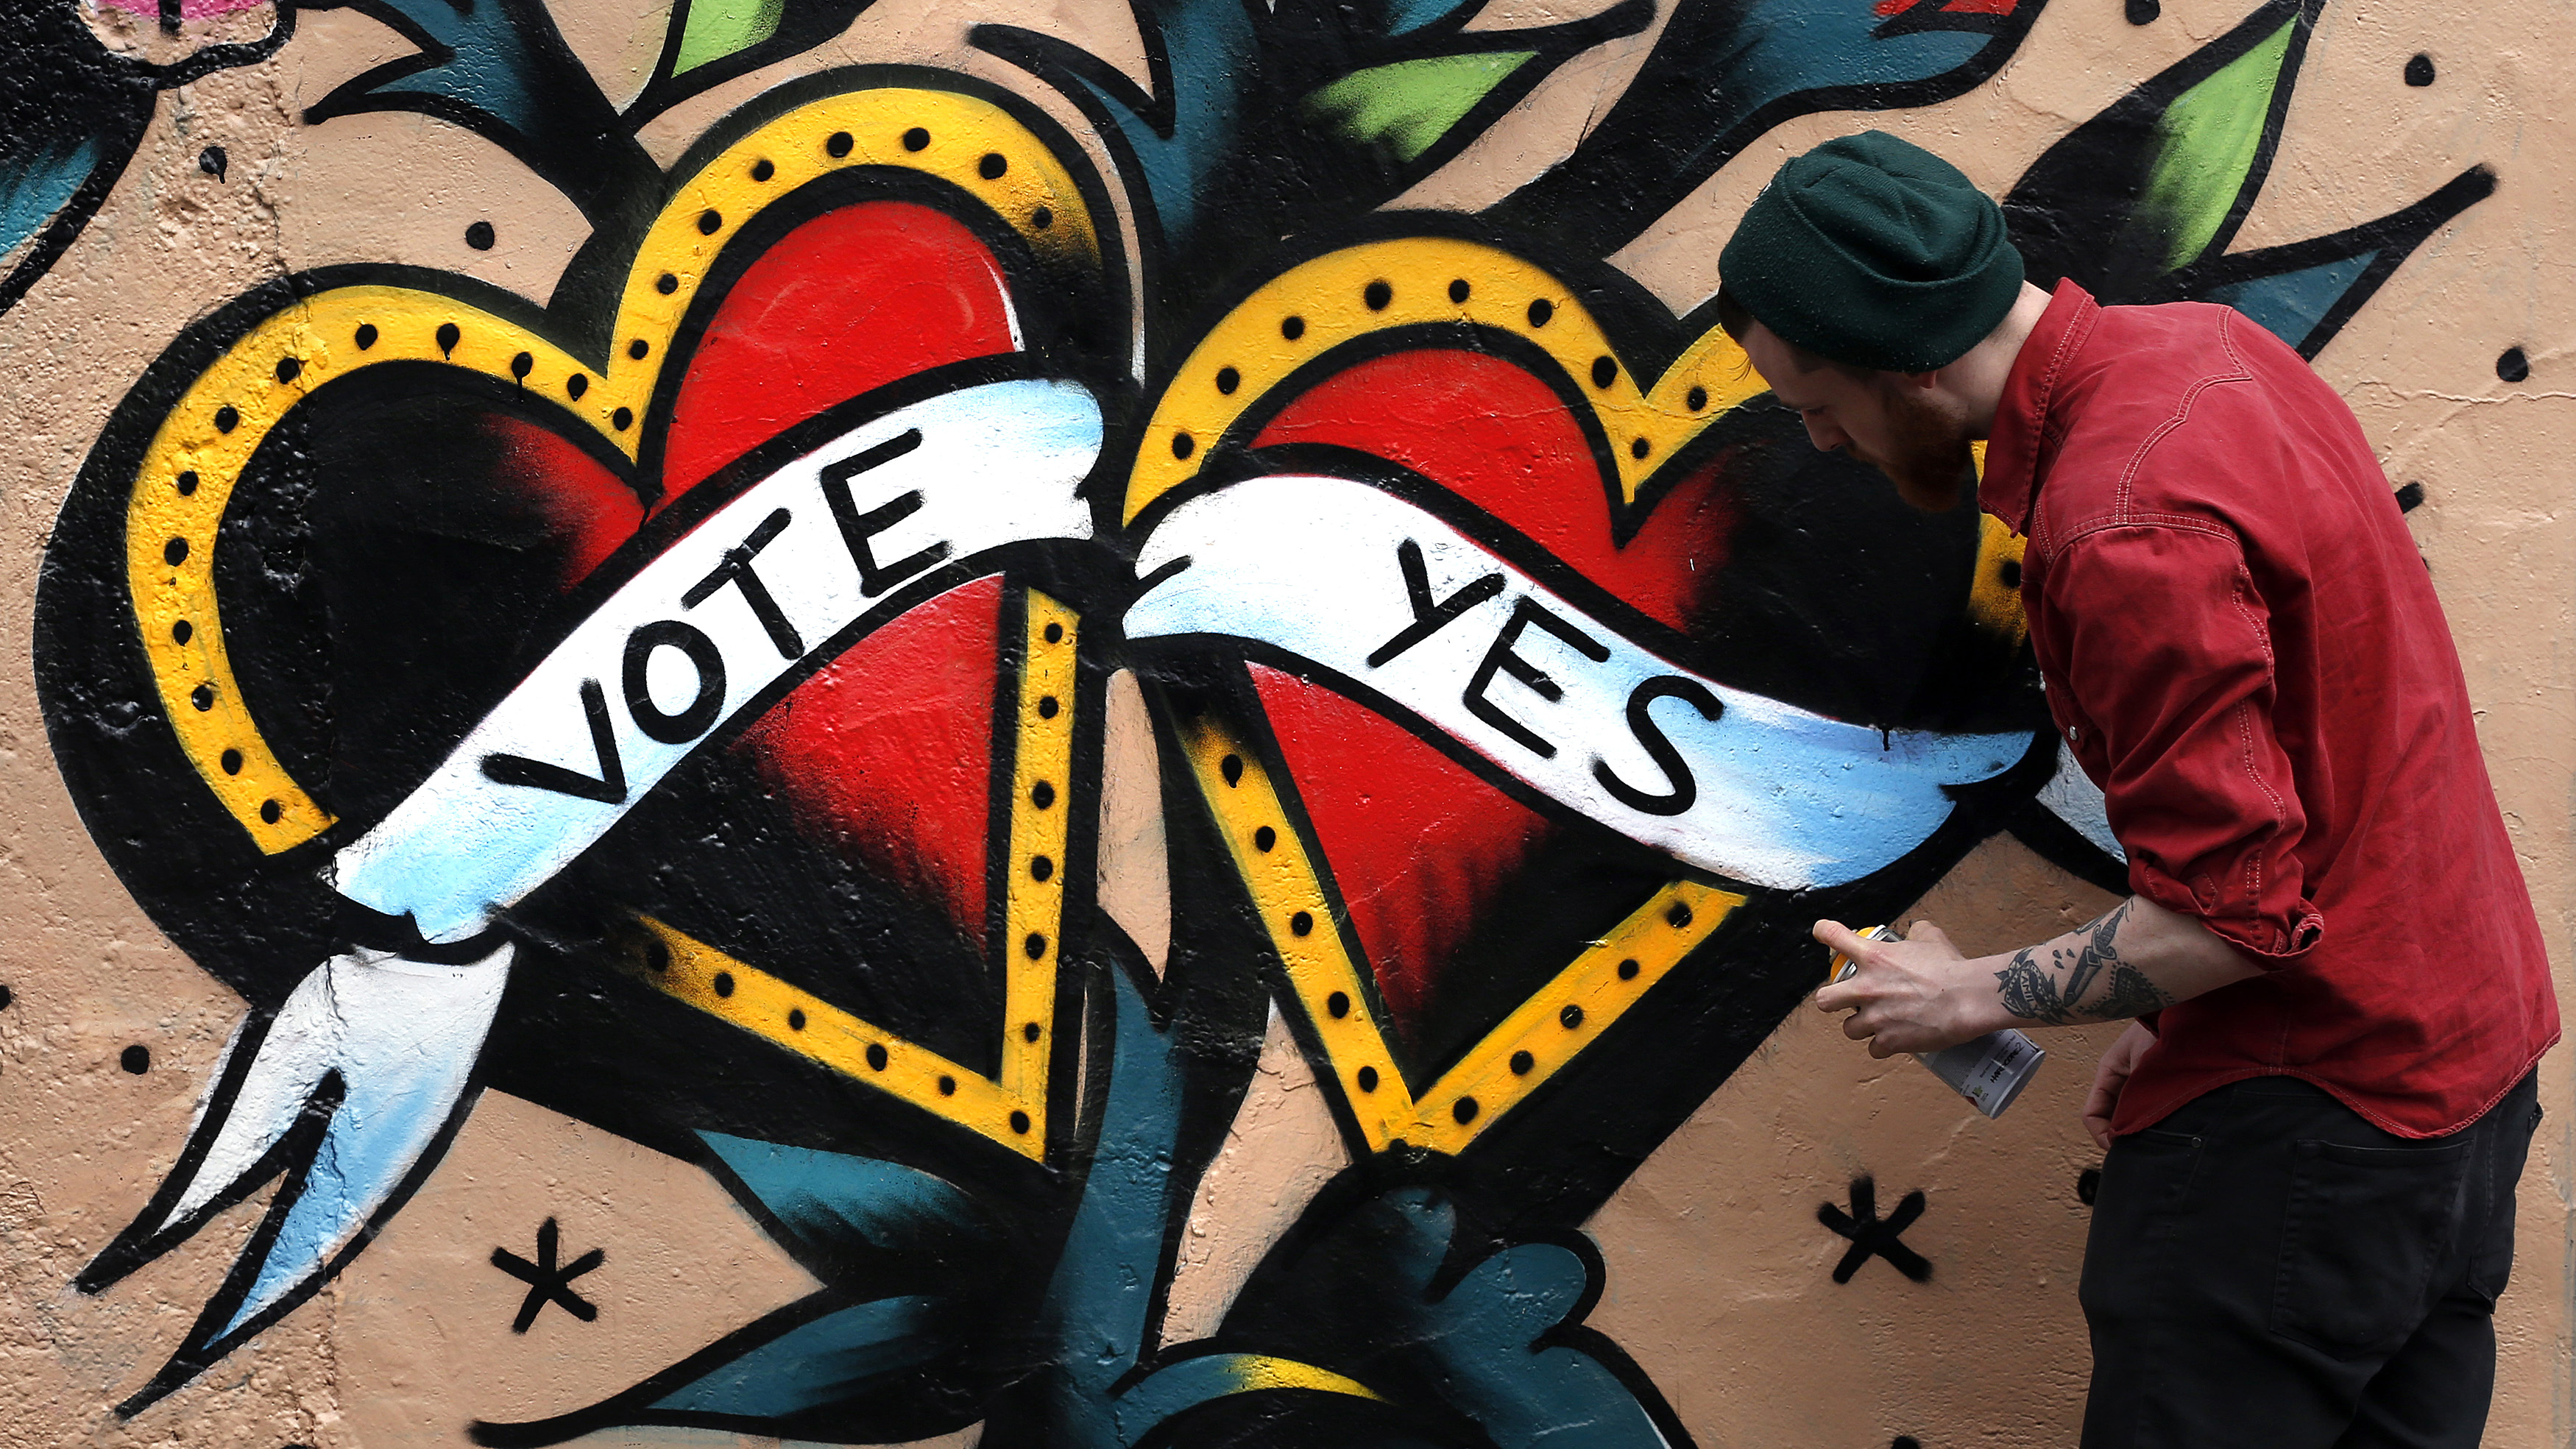 A graffiti artist finishes a Yes campaign piece in central Dublin on May 20, 2015. Irish Prime Minister Enda Kenny said that Ireland must seize its opportunity to become the first country to approve same-sex marriage in a popular vote when it holds a refe